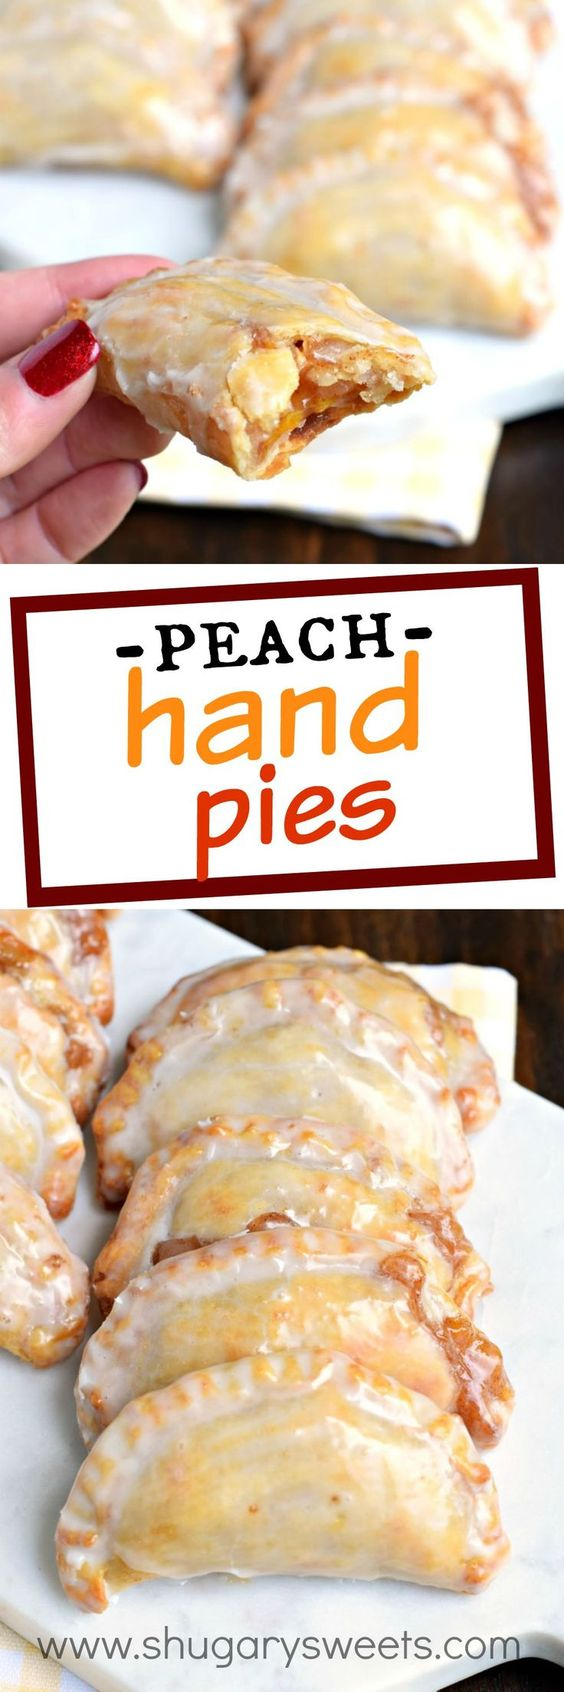 peach h and pies fried fruit pies peach pies bourbon peach h and pies ...